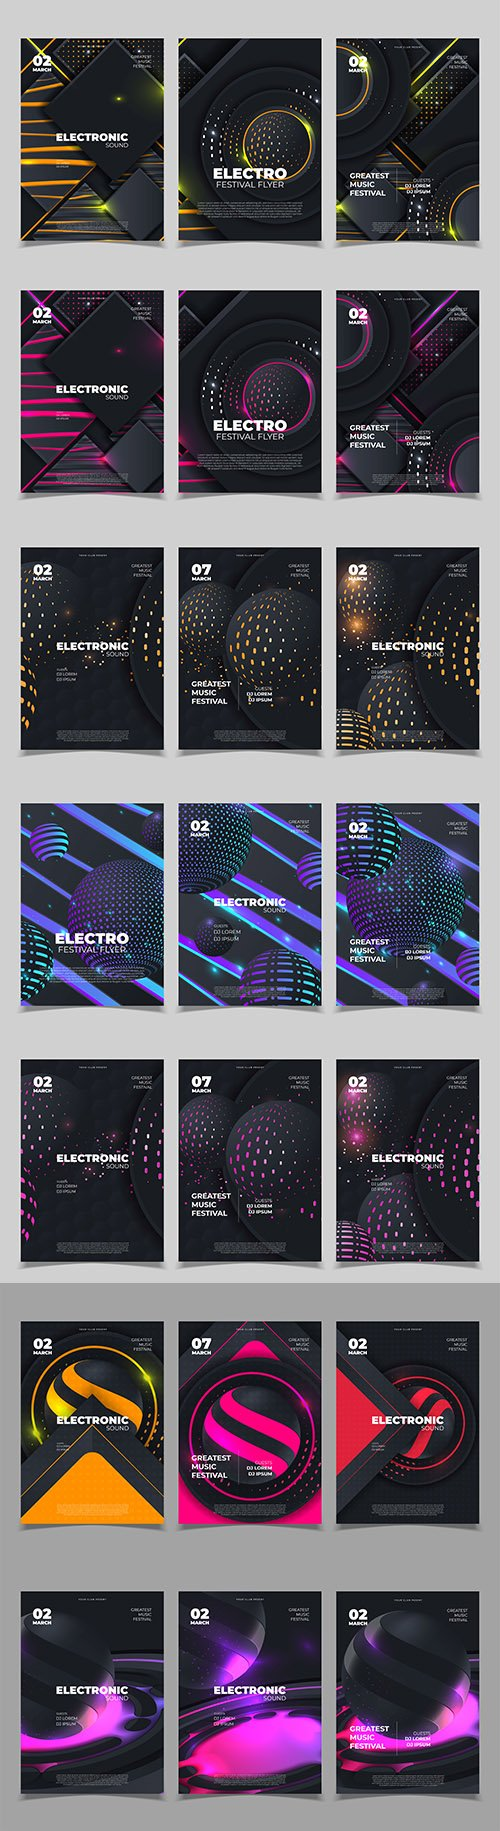 Electronic sound creative music festival design banner